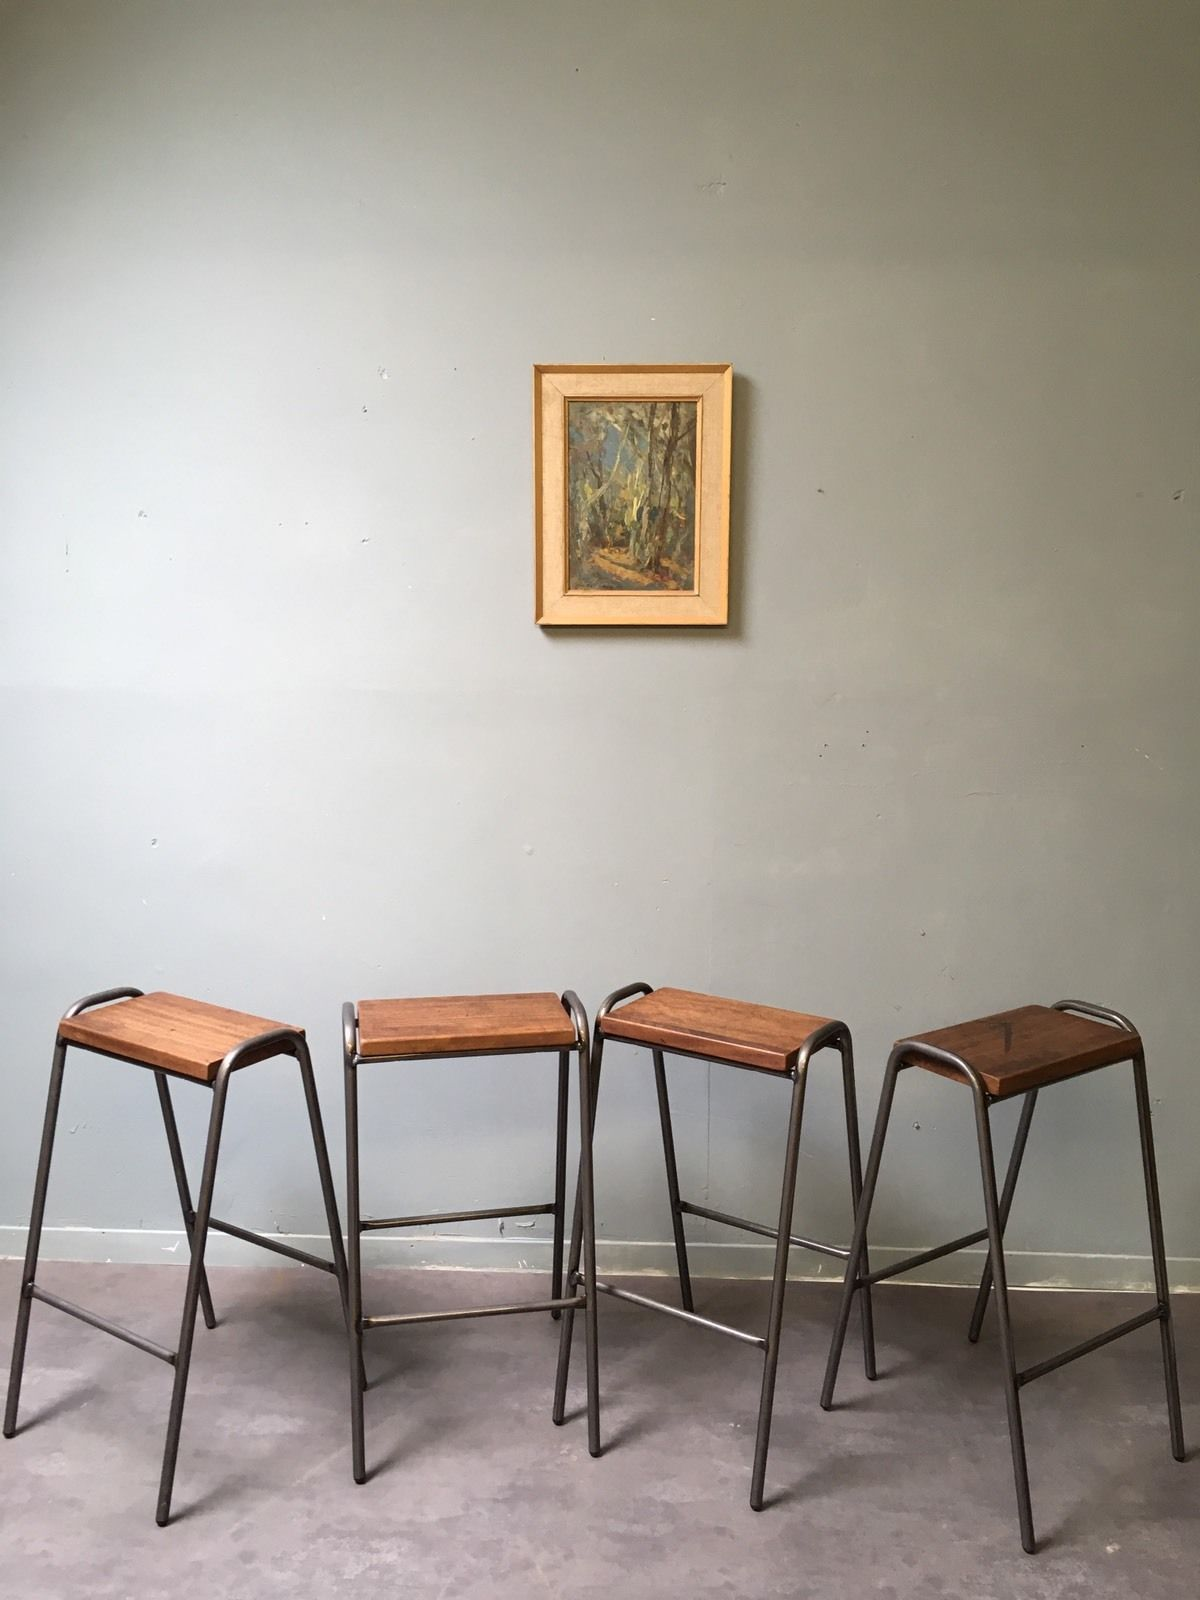 Wondrous Vintage Retro Industrial School Stacking Science Lab Ocoug Best Dining Table And Chair Ideas Images Ocougorg